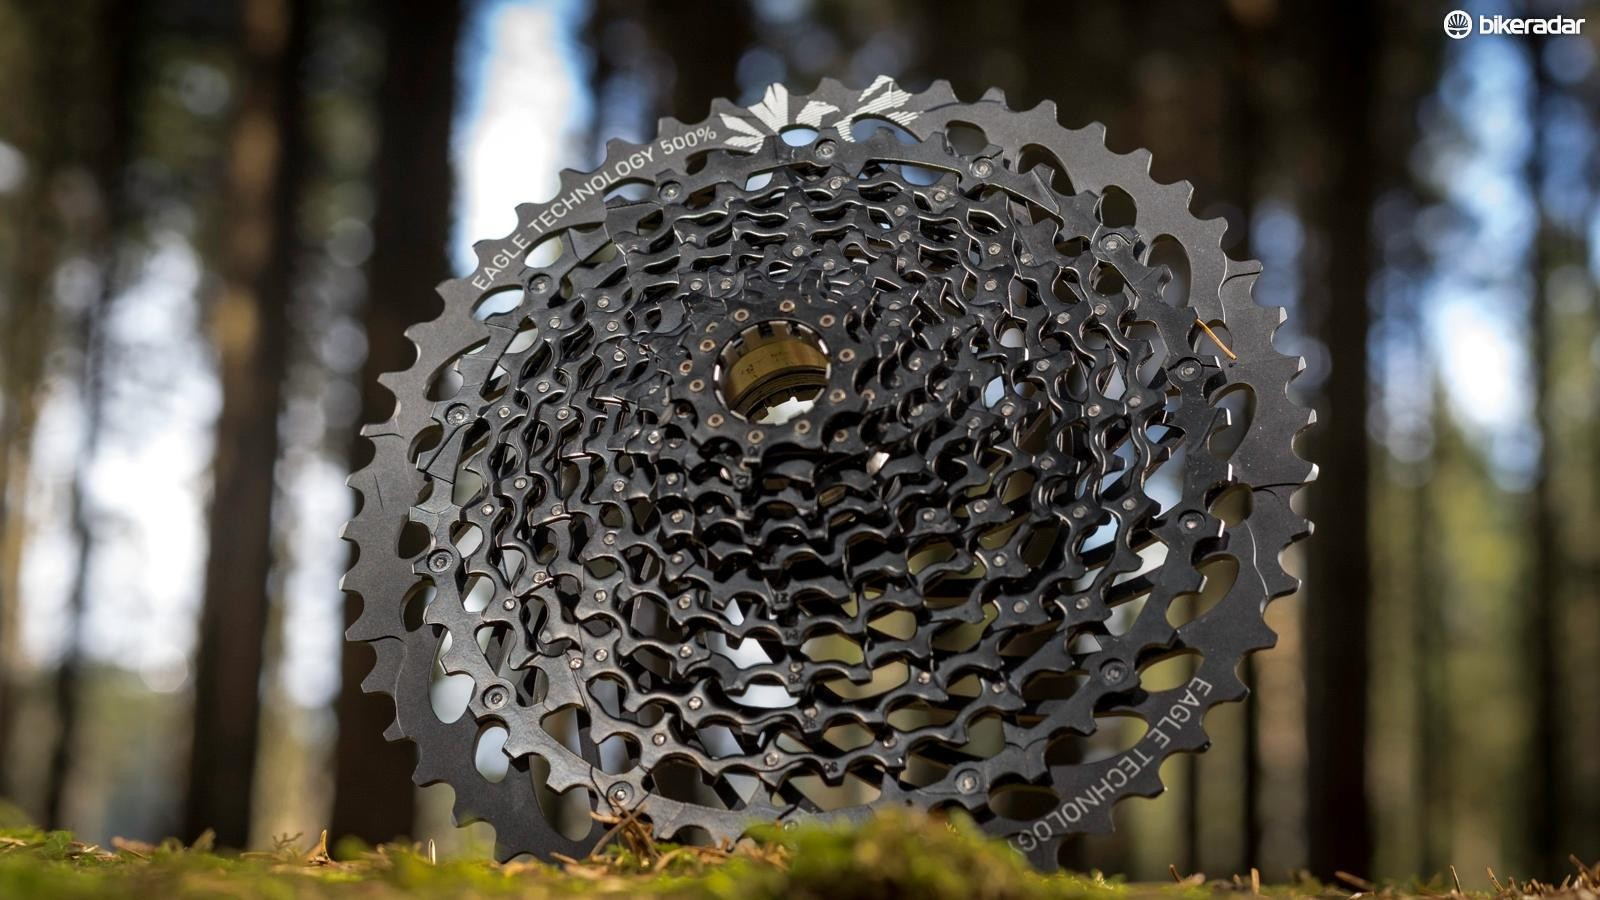 The GX Eagle cassette is pinned together, rather than machined, to keep the cost down